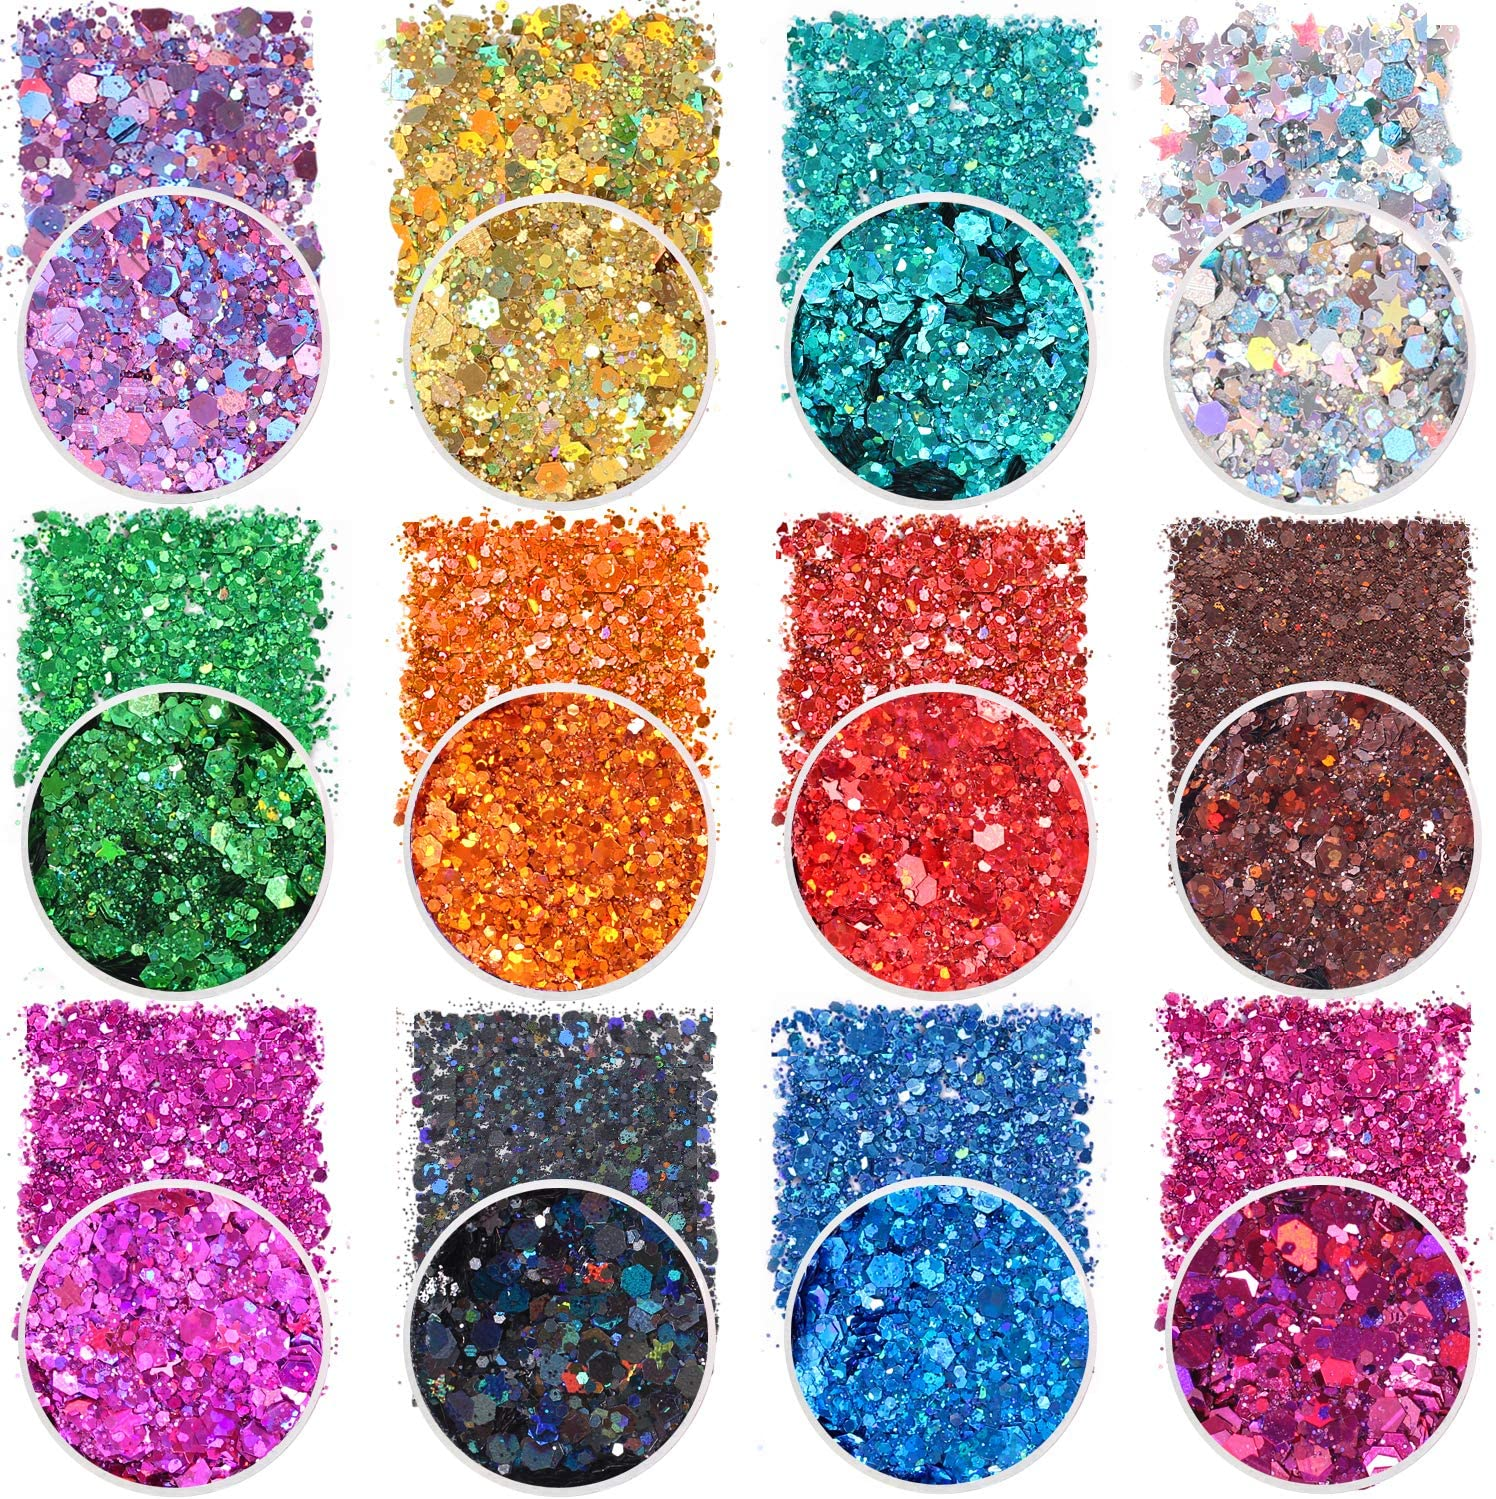 Holographic Chunky Glitter Sequins, 12 Colors Mixed Cosmetic Glitter for Face Body Eye Hair Nail Art Lip Gloss Makeup, Festival Glitter with Different Hexagons Size and Stars (Laser Mix) : Beauty & Personal Care